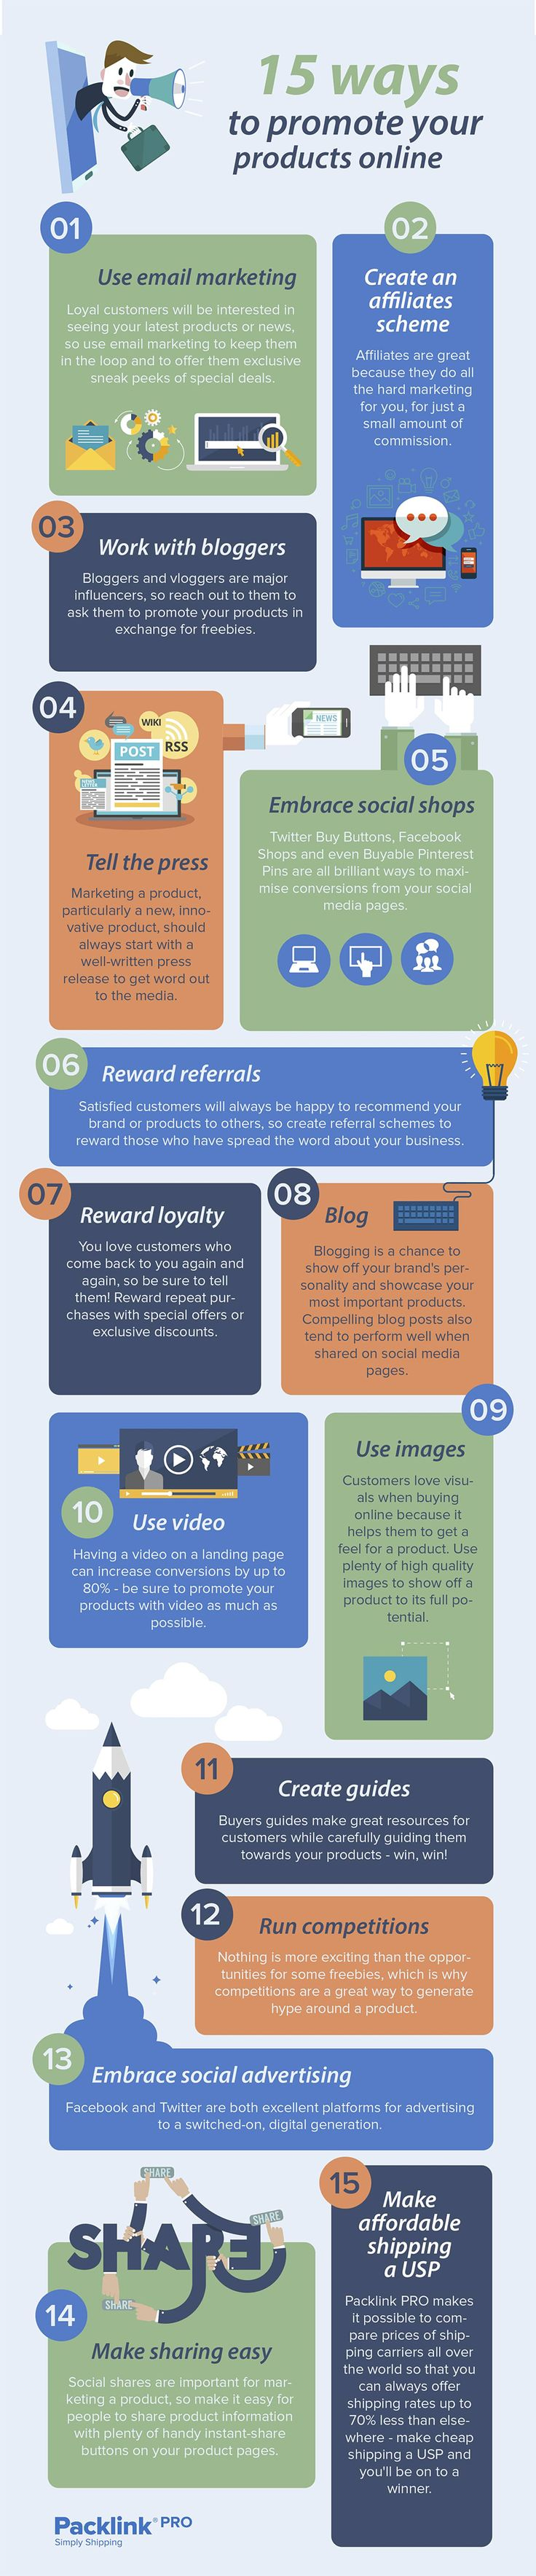 Own an Online Shop? 15 Ways to Promote Your Products Online #Infographic #Ecommerce #Marketing